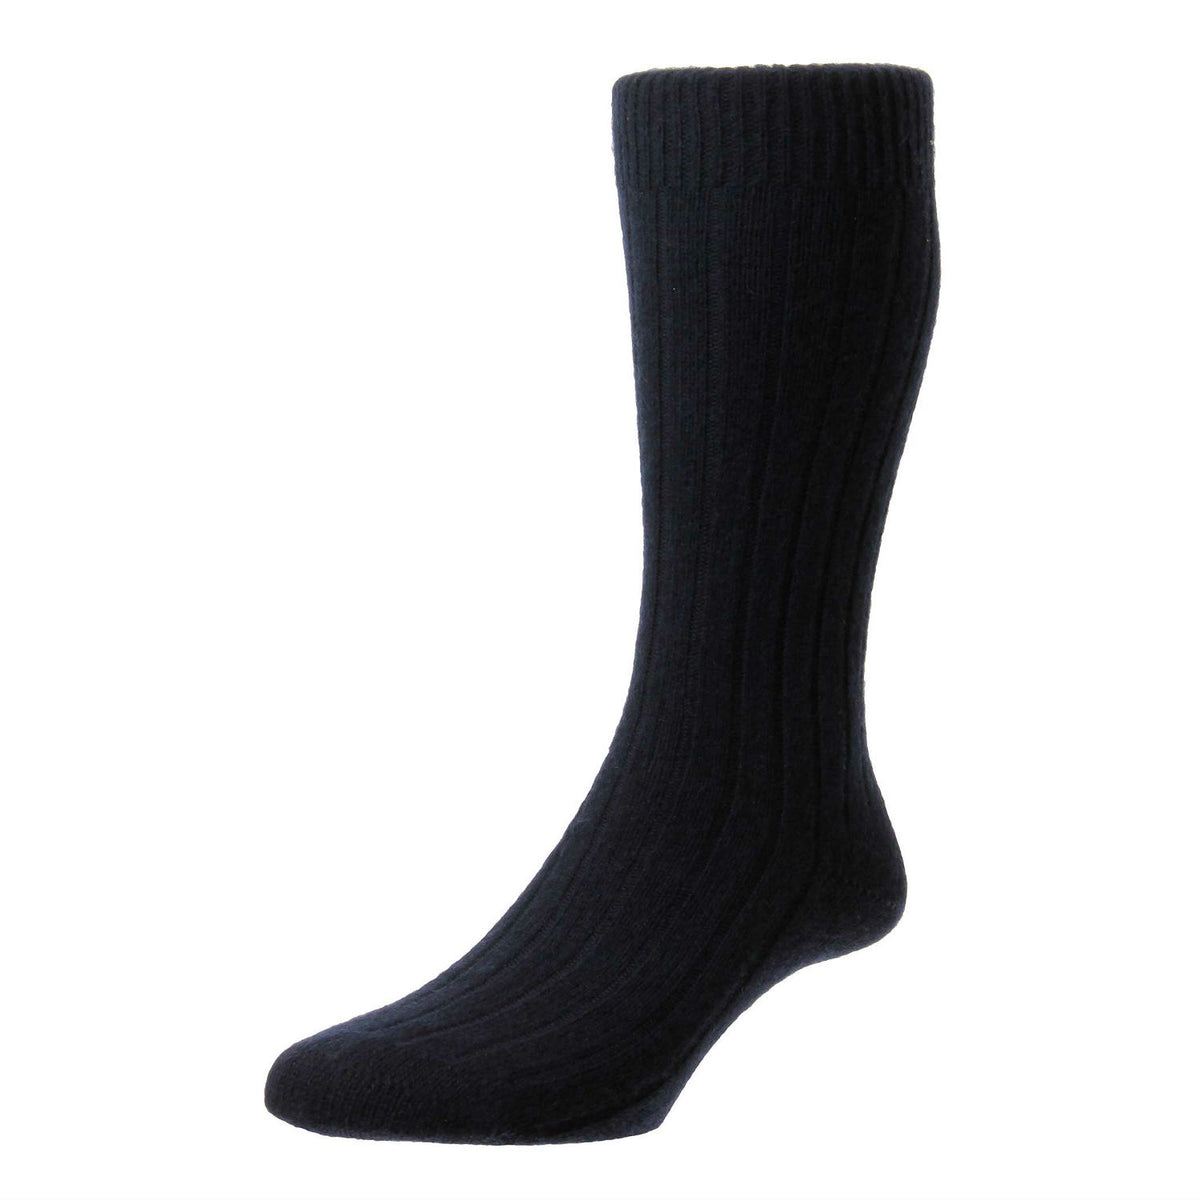 Navy Blue | Mens Cashmere Socks | Made in England | Calf Length Sock | buy now at The Cashmere Choice London